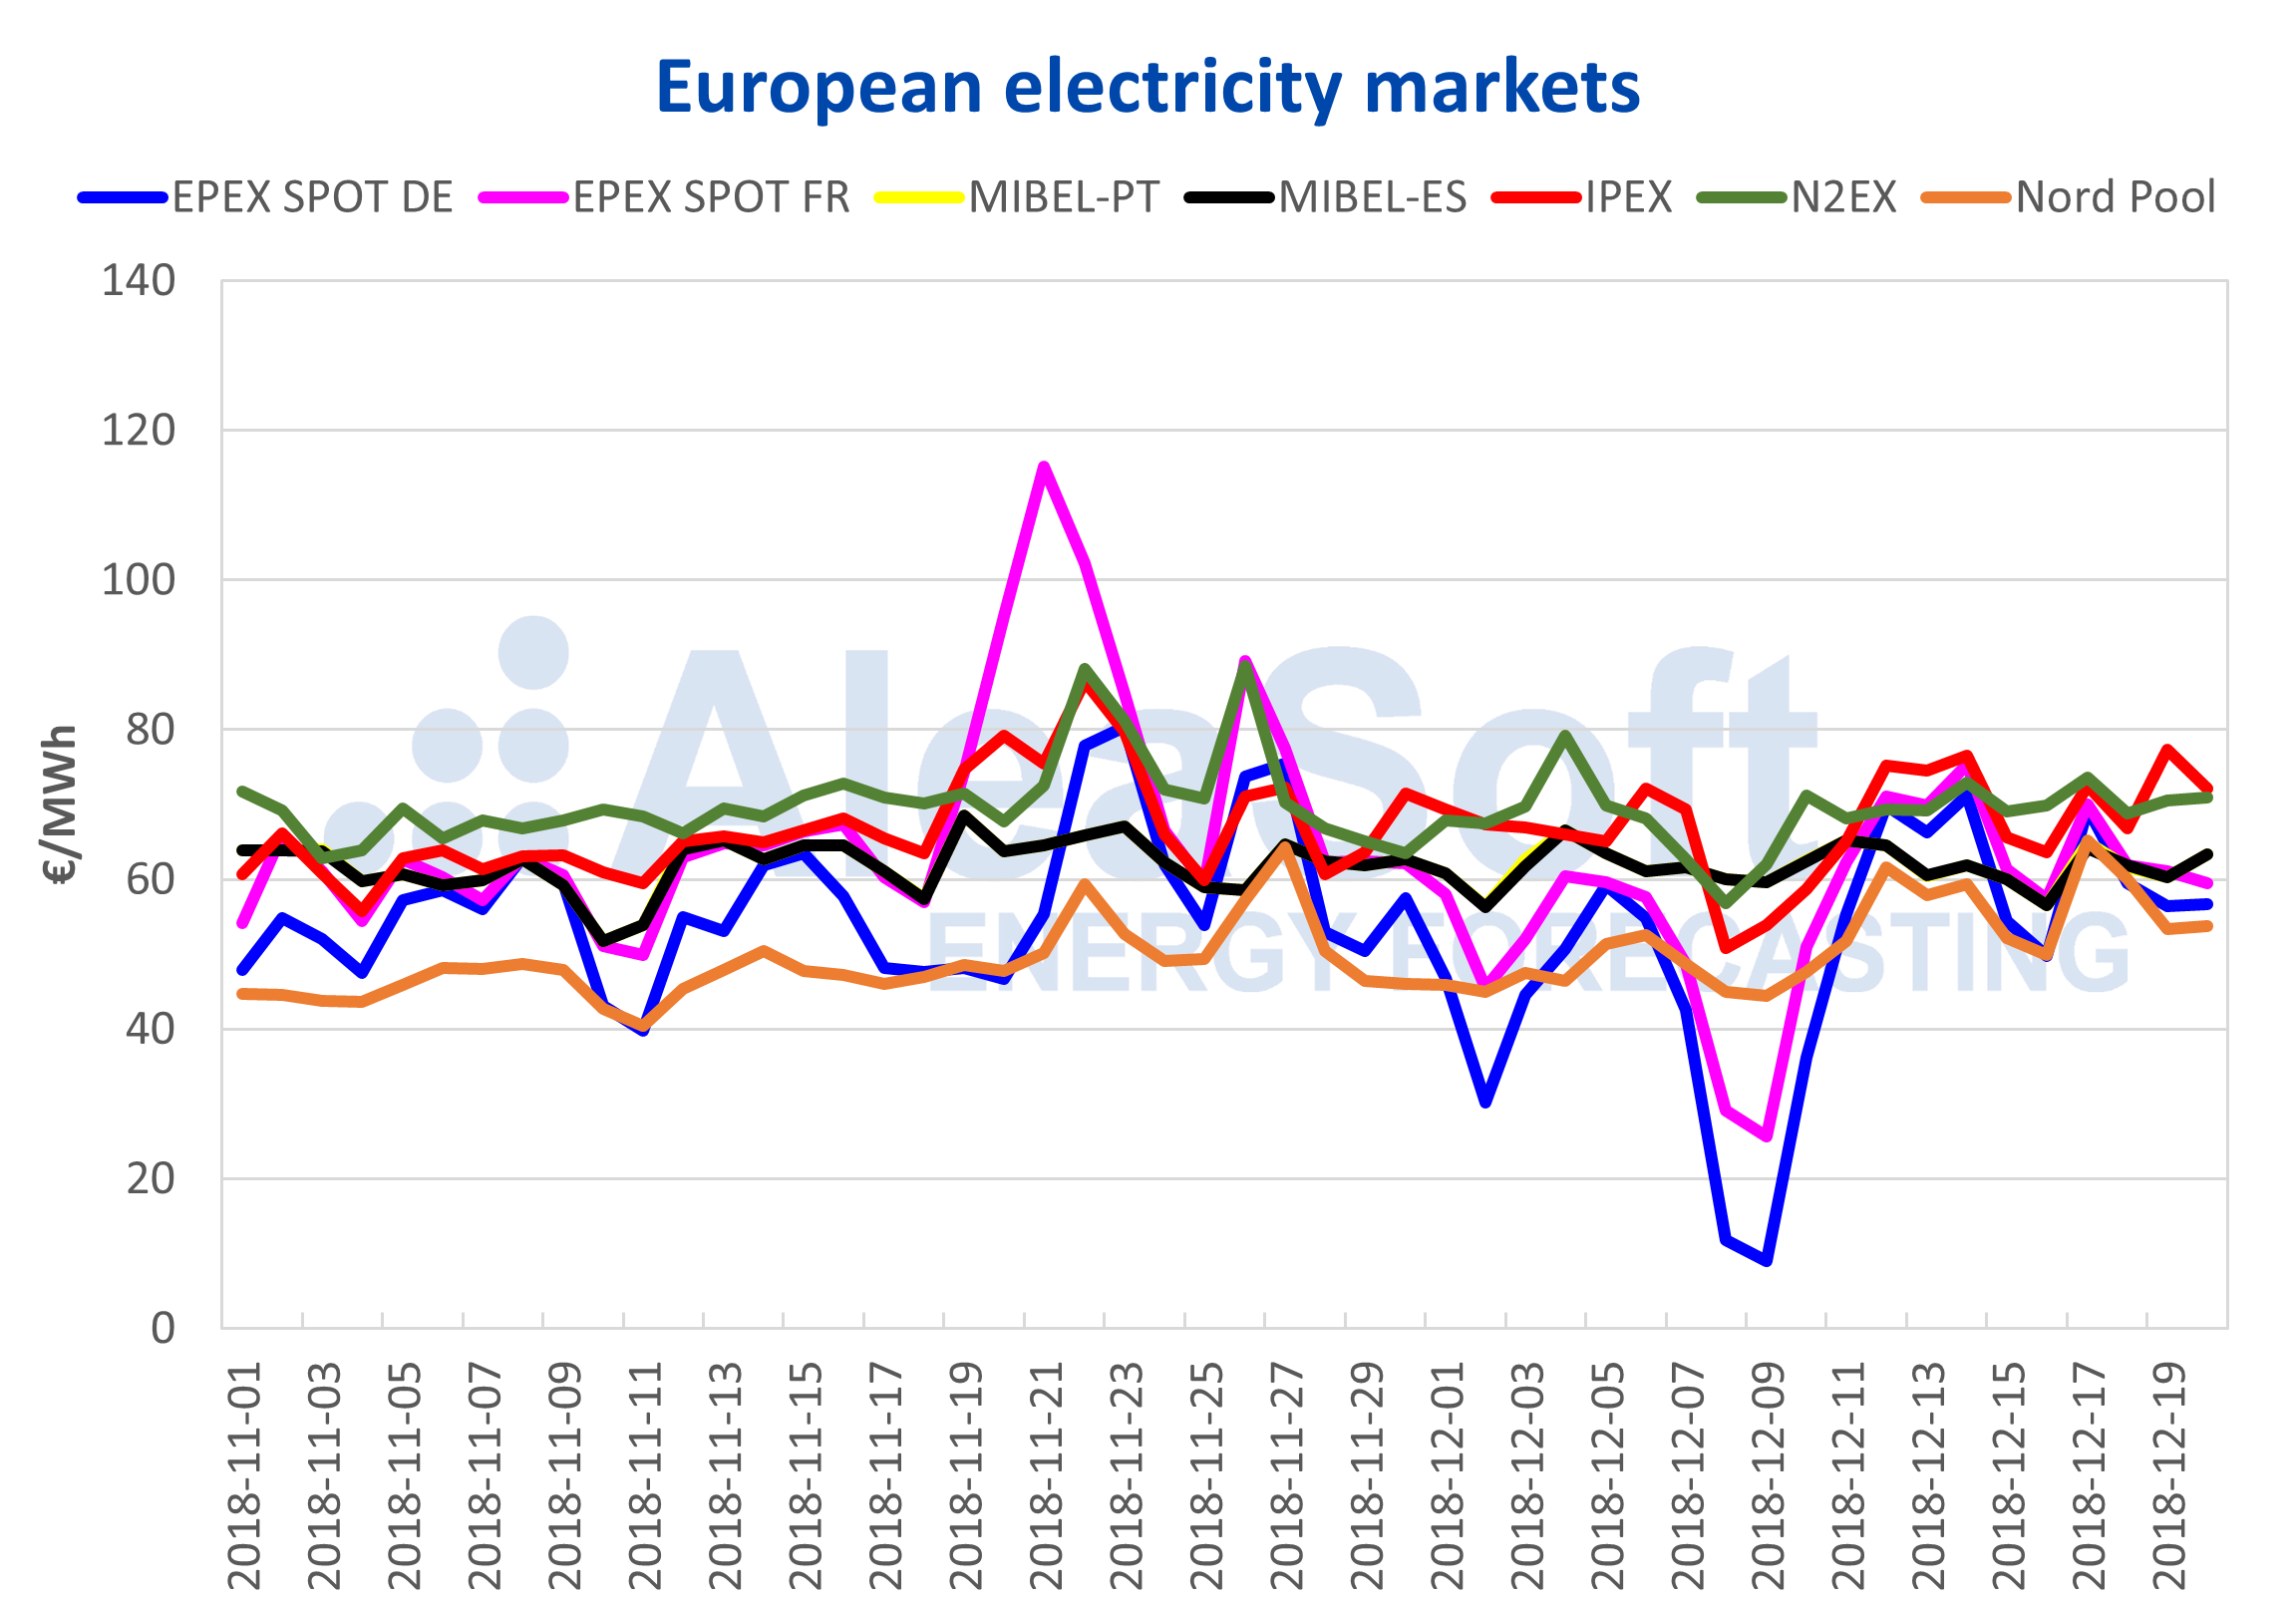 AleaSoft - European electricity market priced